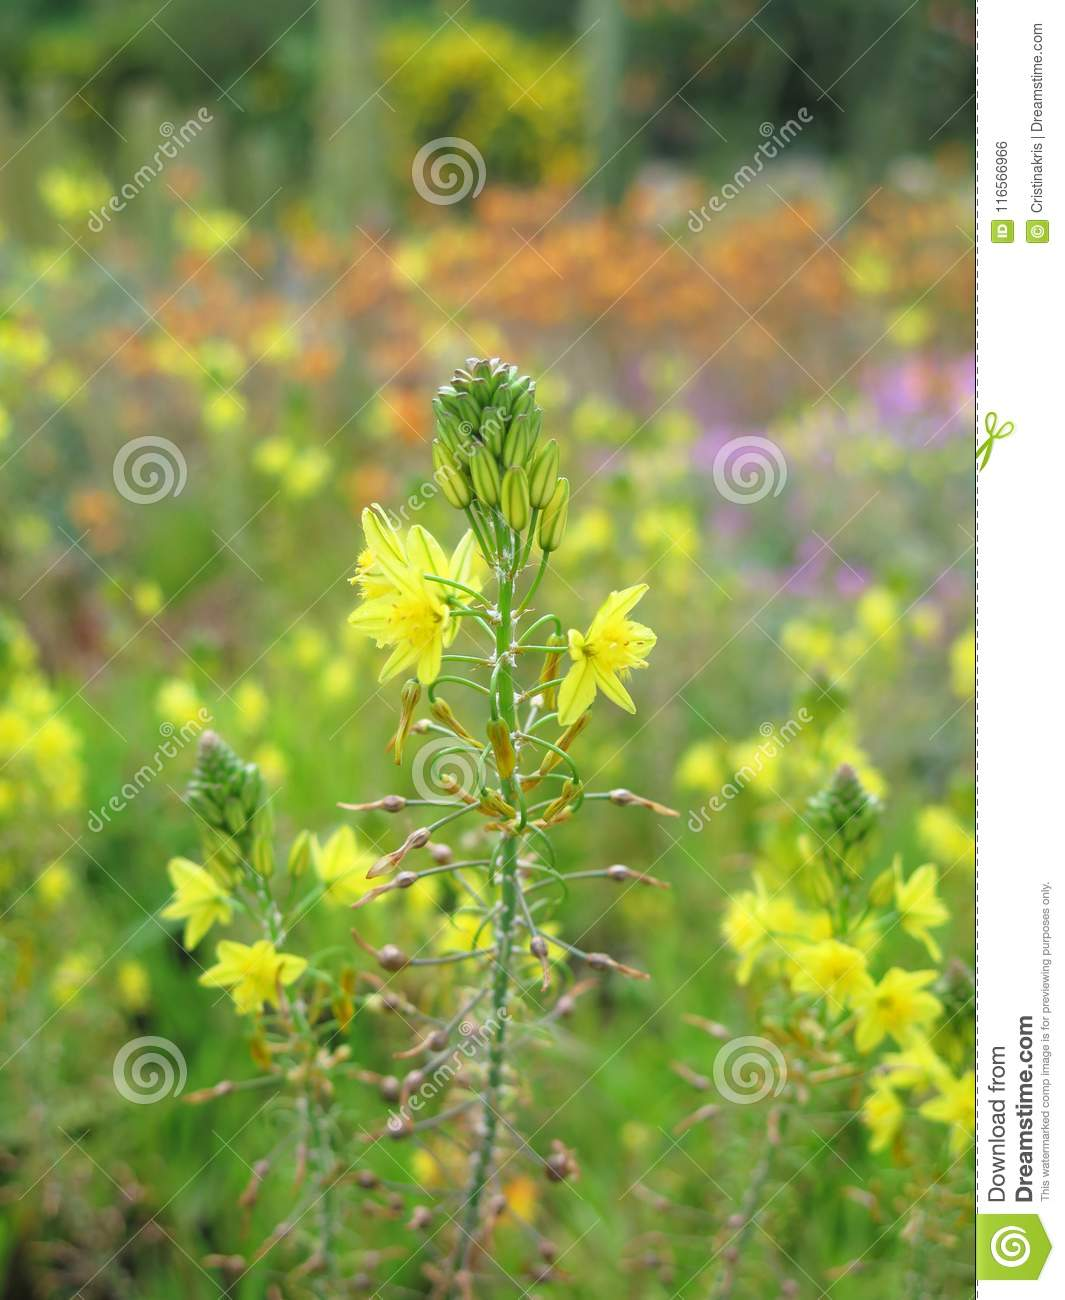 Exotic Yellow Flowers Stock Photo Image Of Broken Branches 116566966